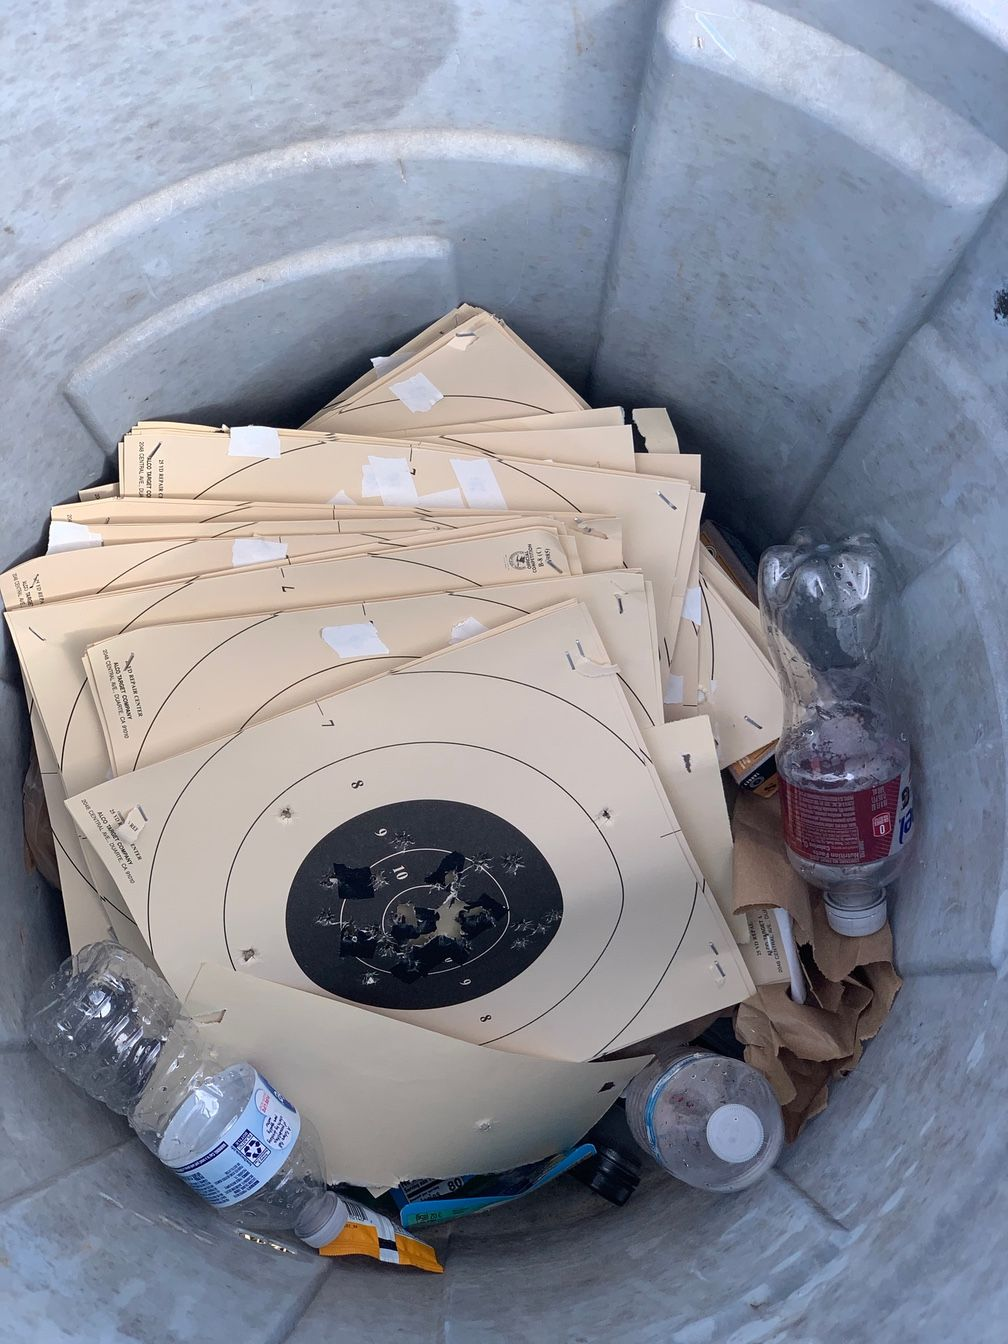 Trash can full of B-8 targets